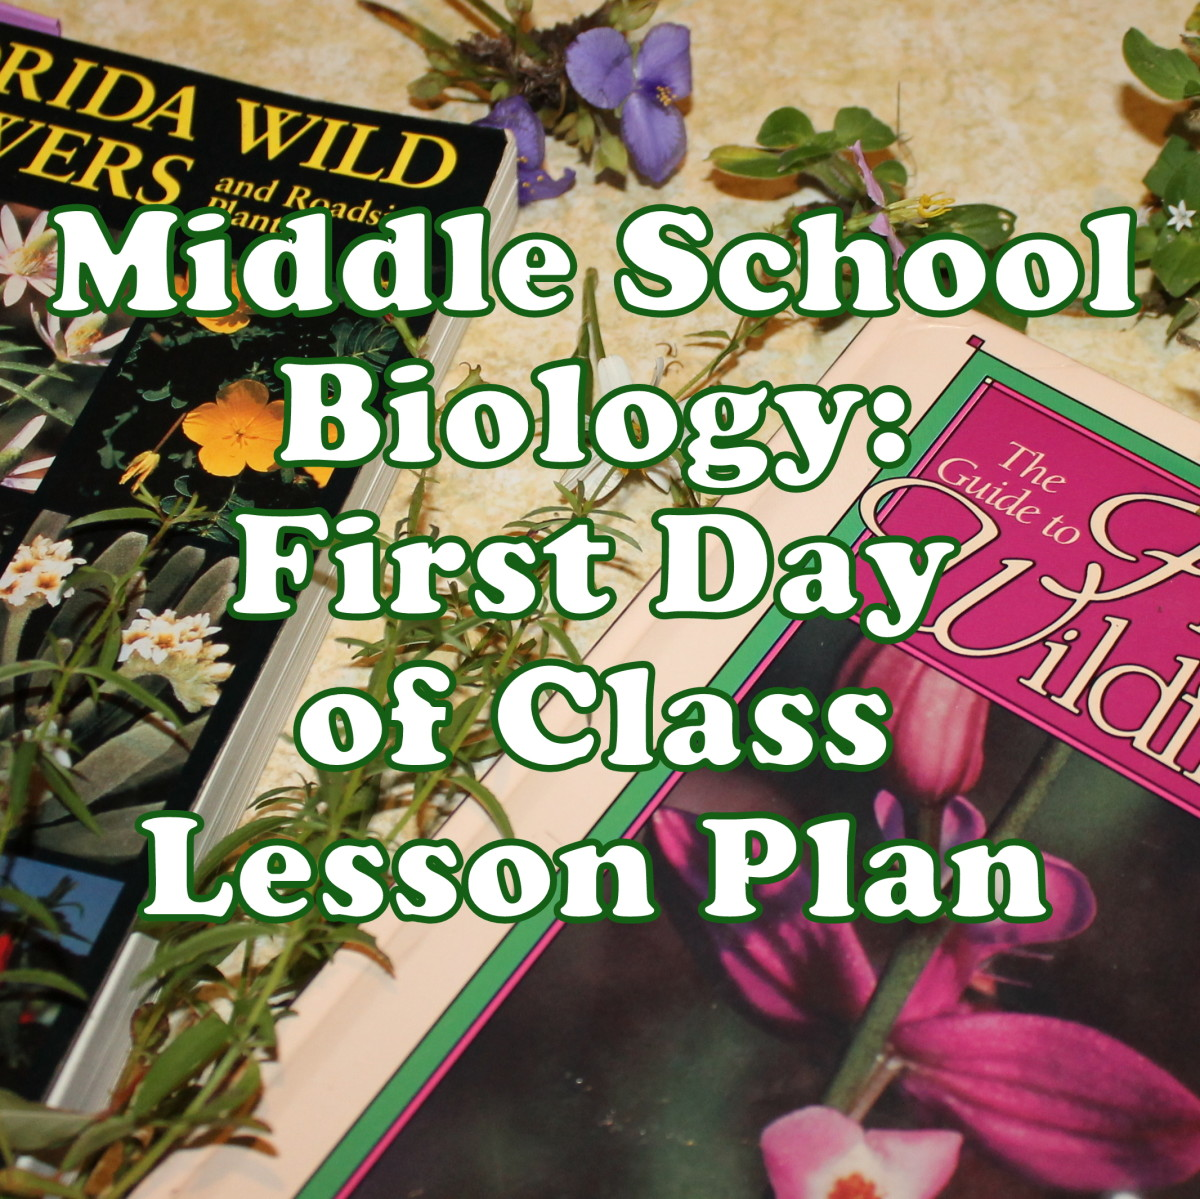 Middle School Biology First Day Lesson Plan